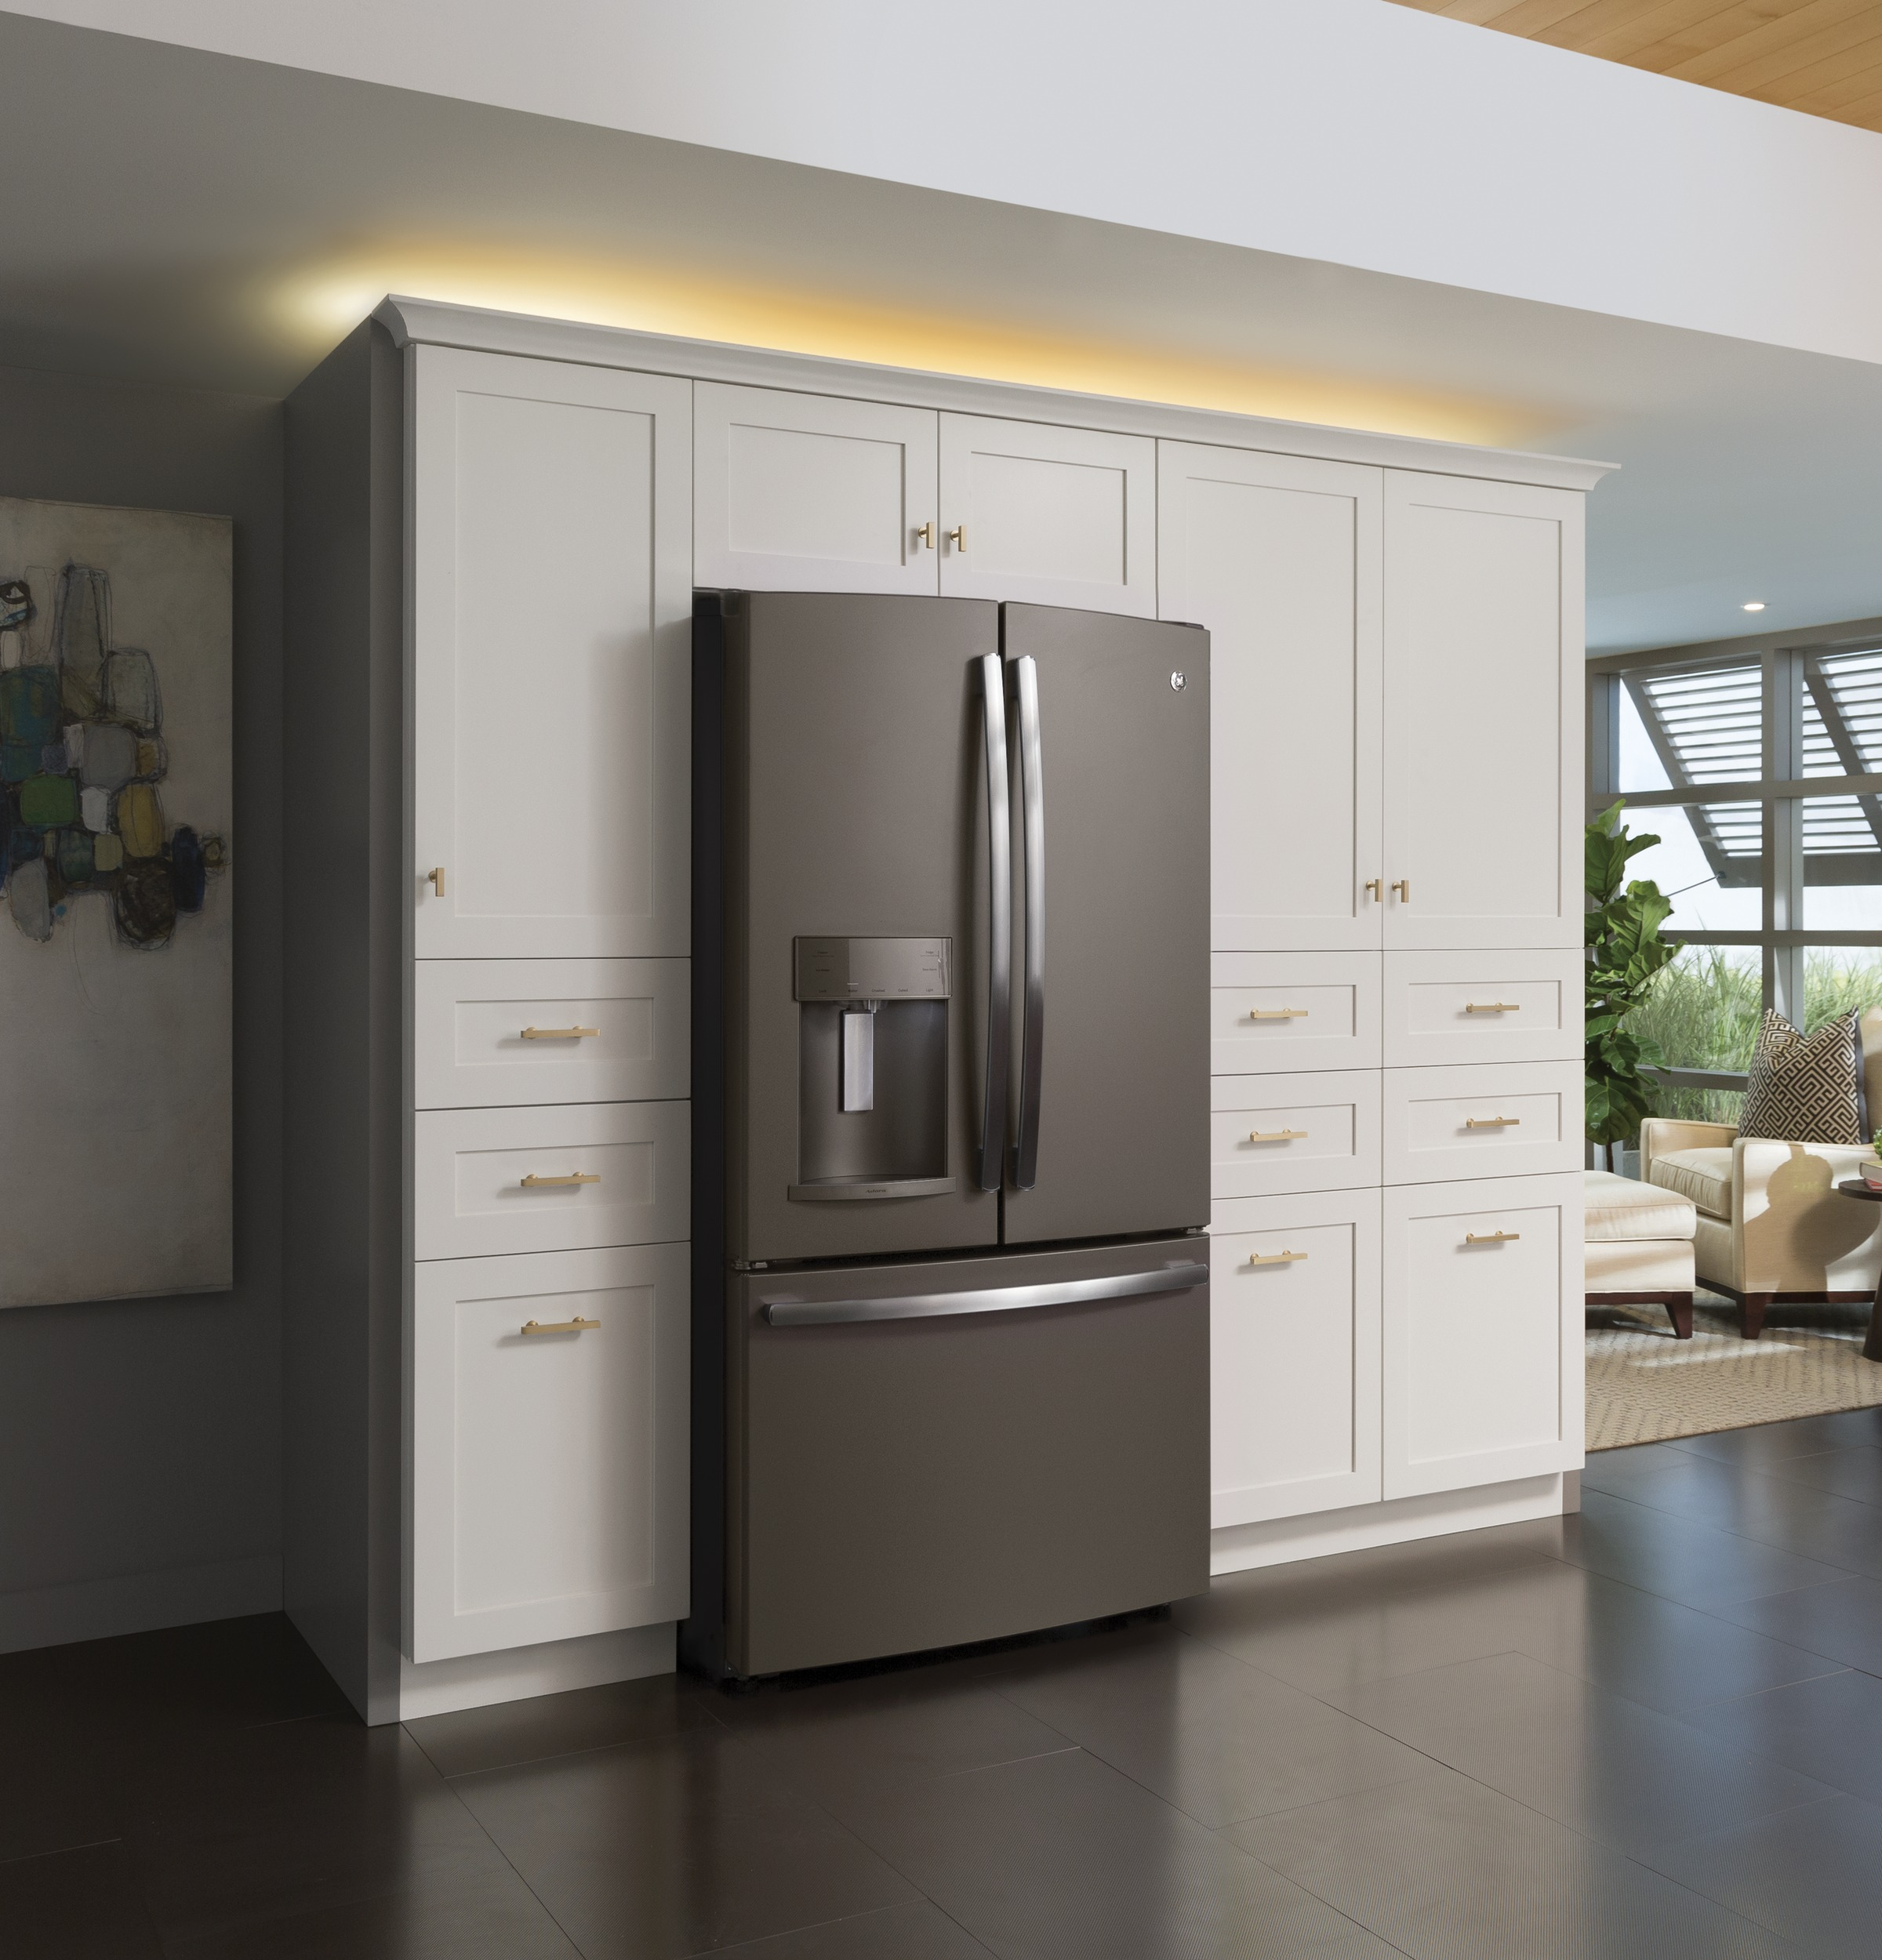 Adora series by ge energy star 277 cu ft french door product image rubansaba